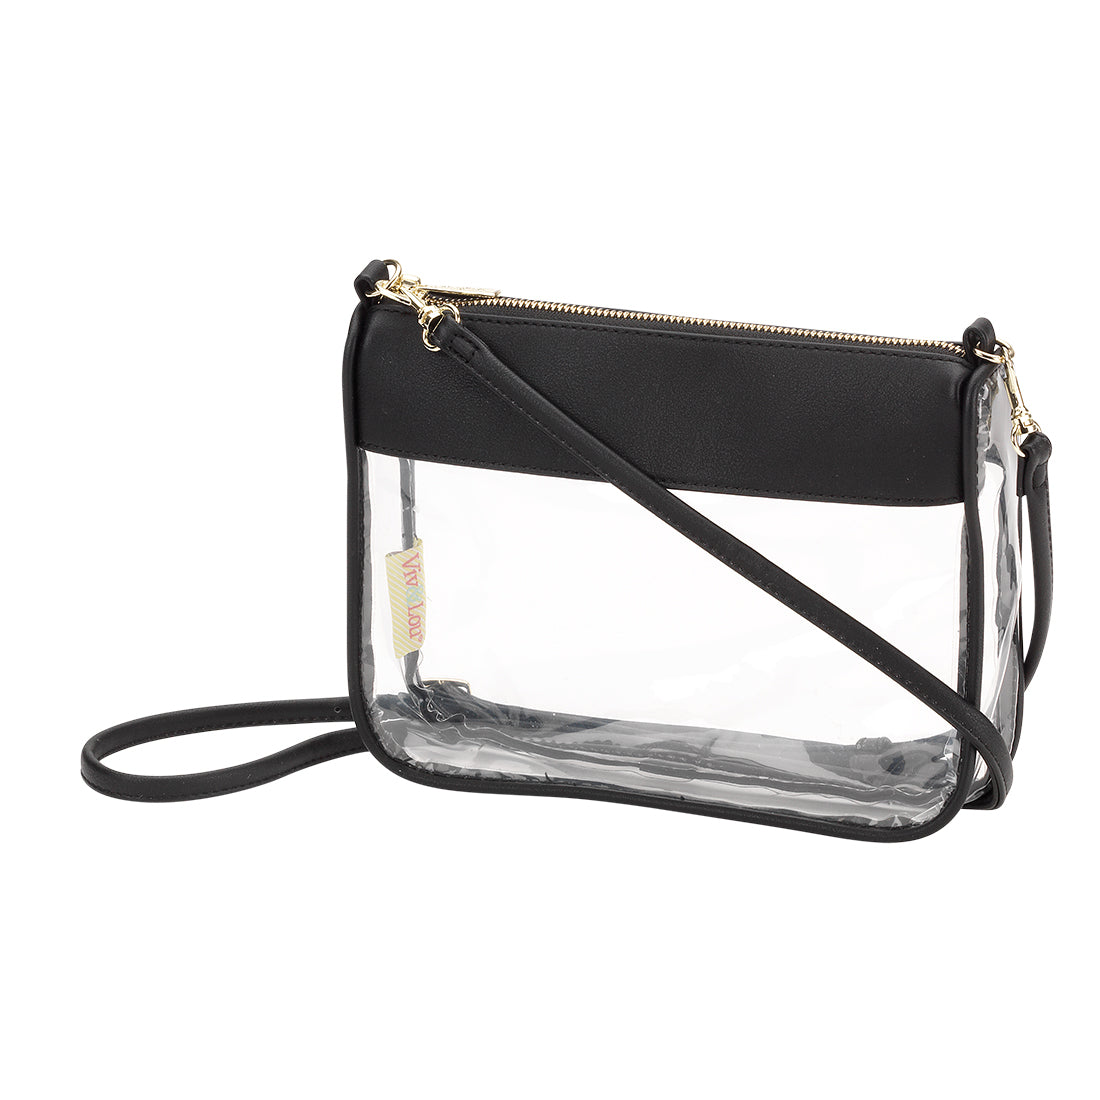 Stadium Approved Clear Crossbody Purse in Black without Monogram,Purses - Dirt Road Divas Boutique